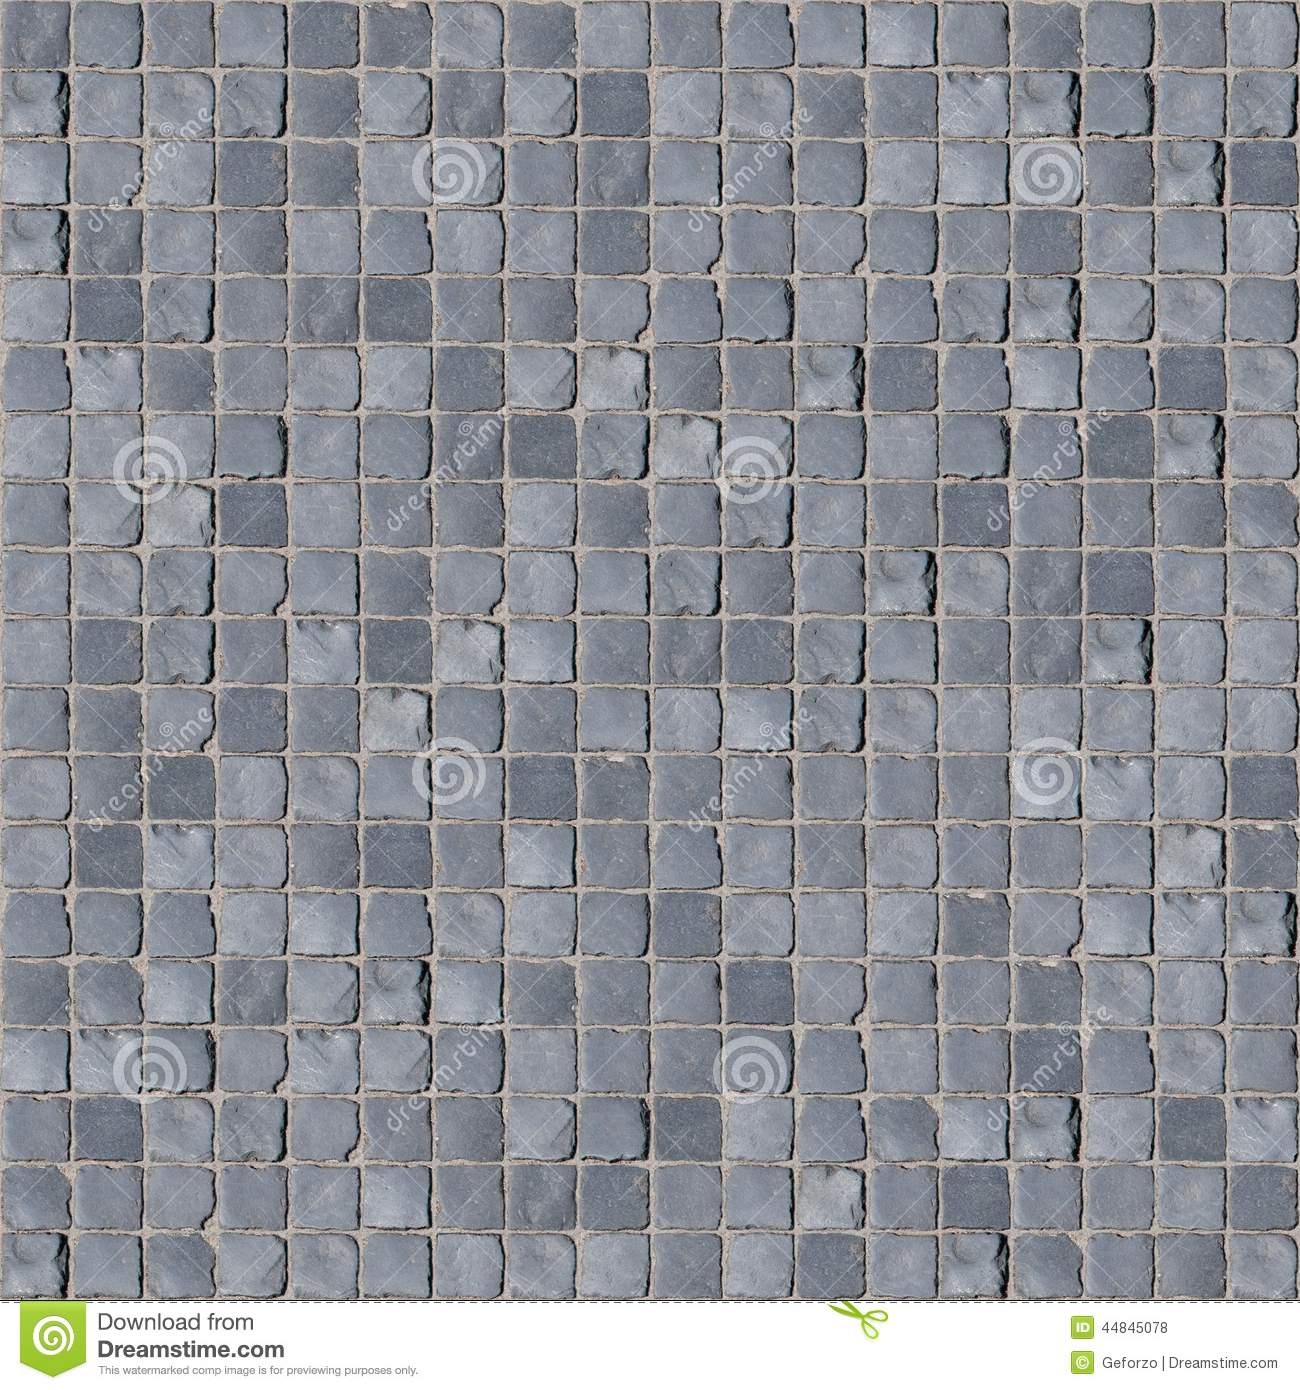 Regular Cobblestone Texture Stock Photo Image 44845078